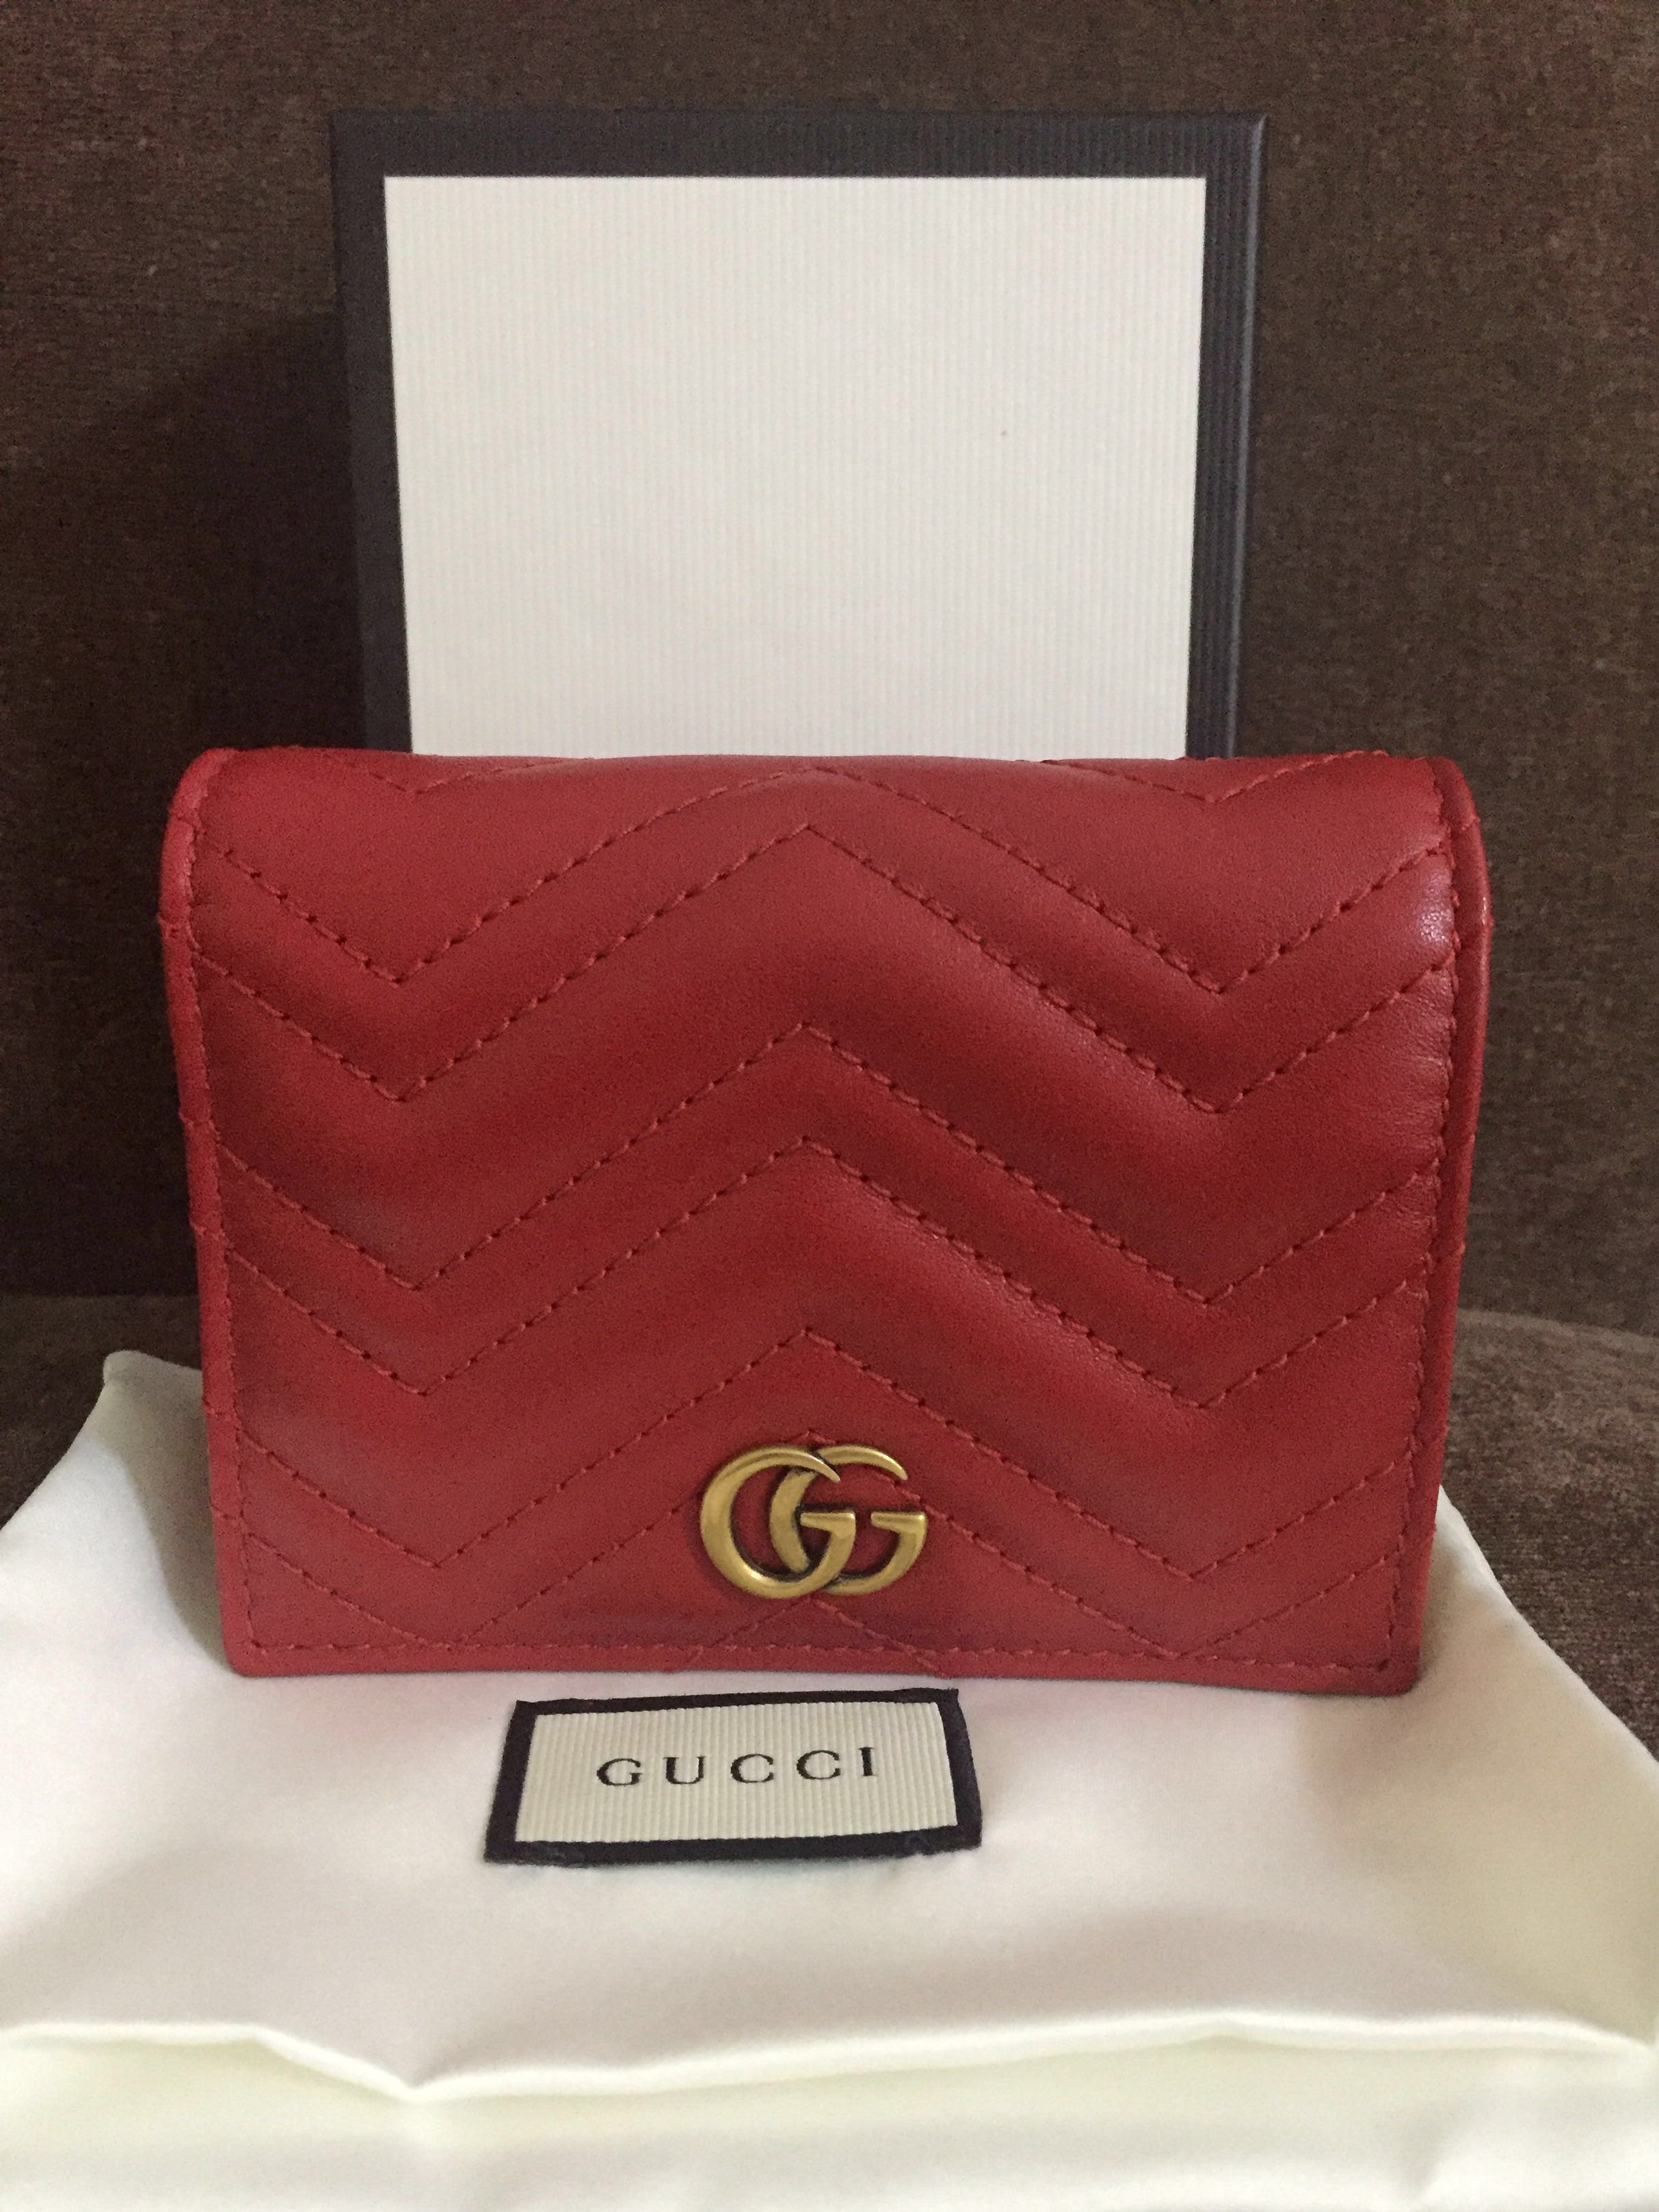 3c63d4a8ed67 Gucci Marmont cardholder / small wallet (Authentic), Luxury, Bags & Wallets,  Wallets on Carousell